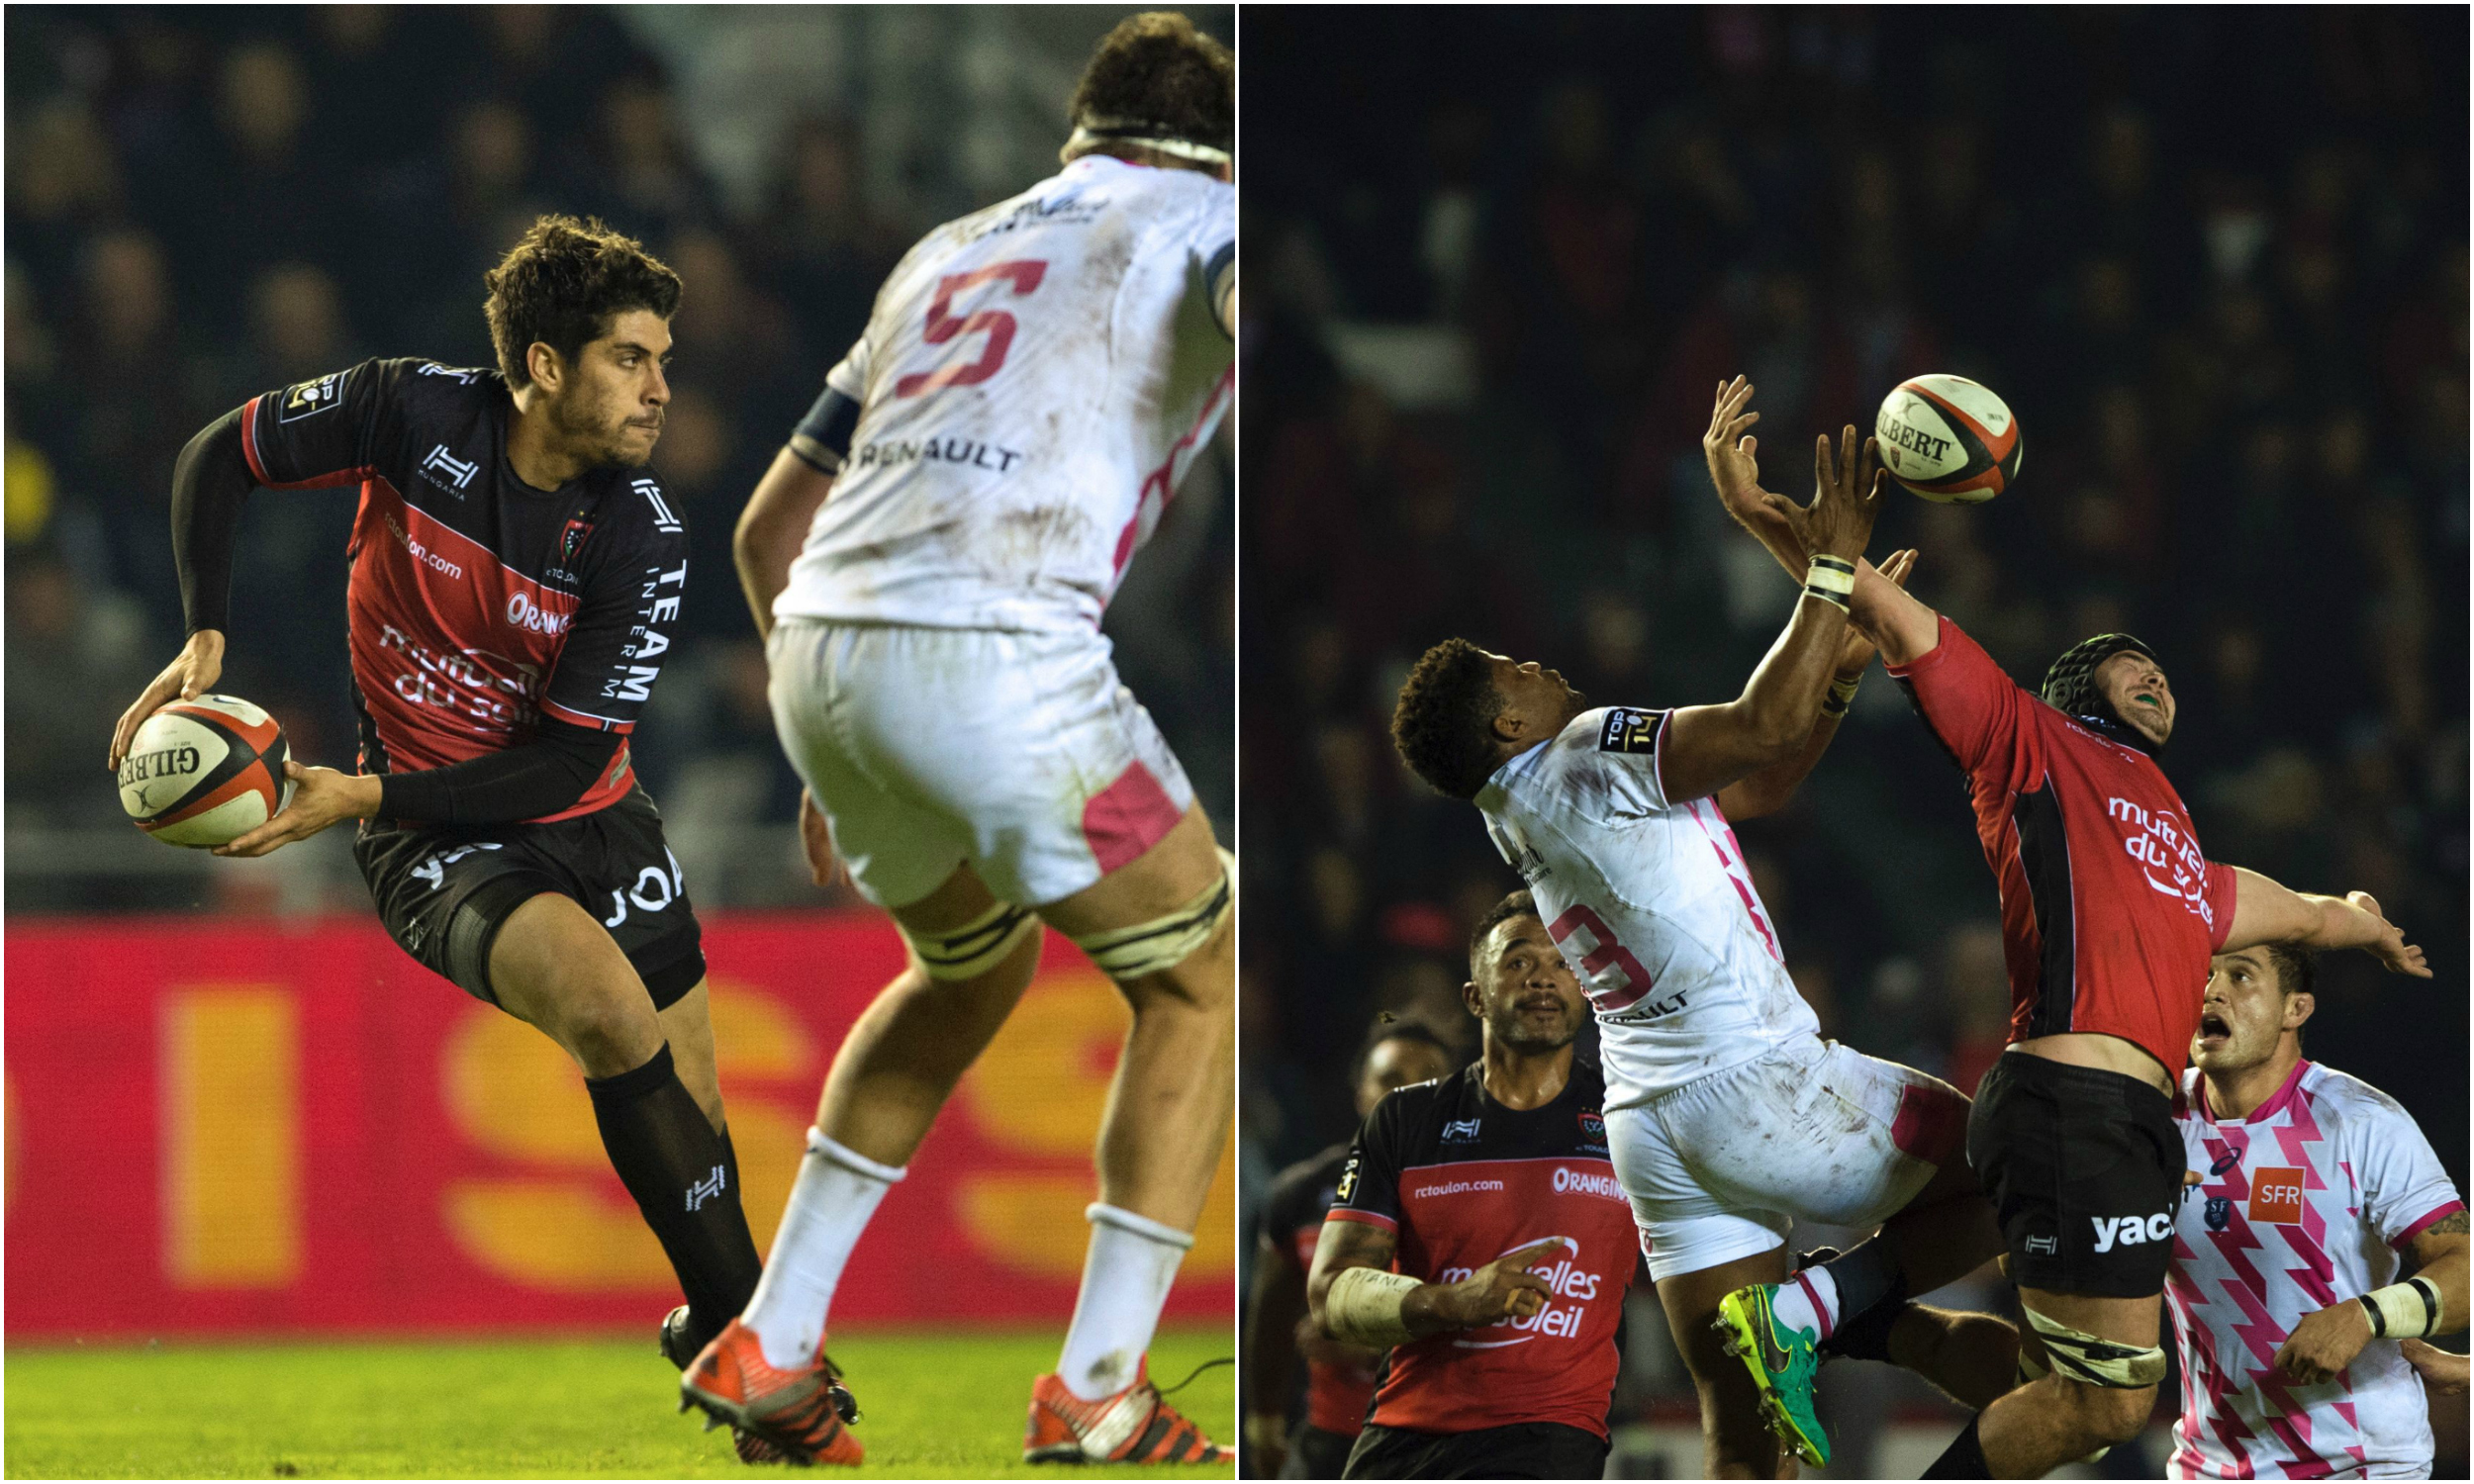 rugby rencontre top 14